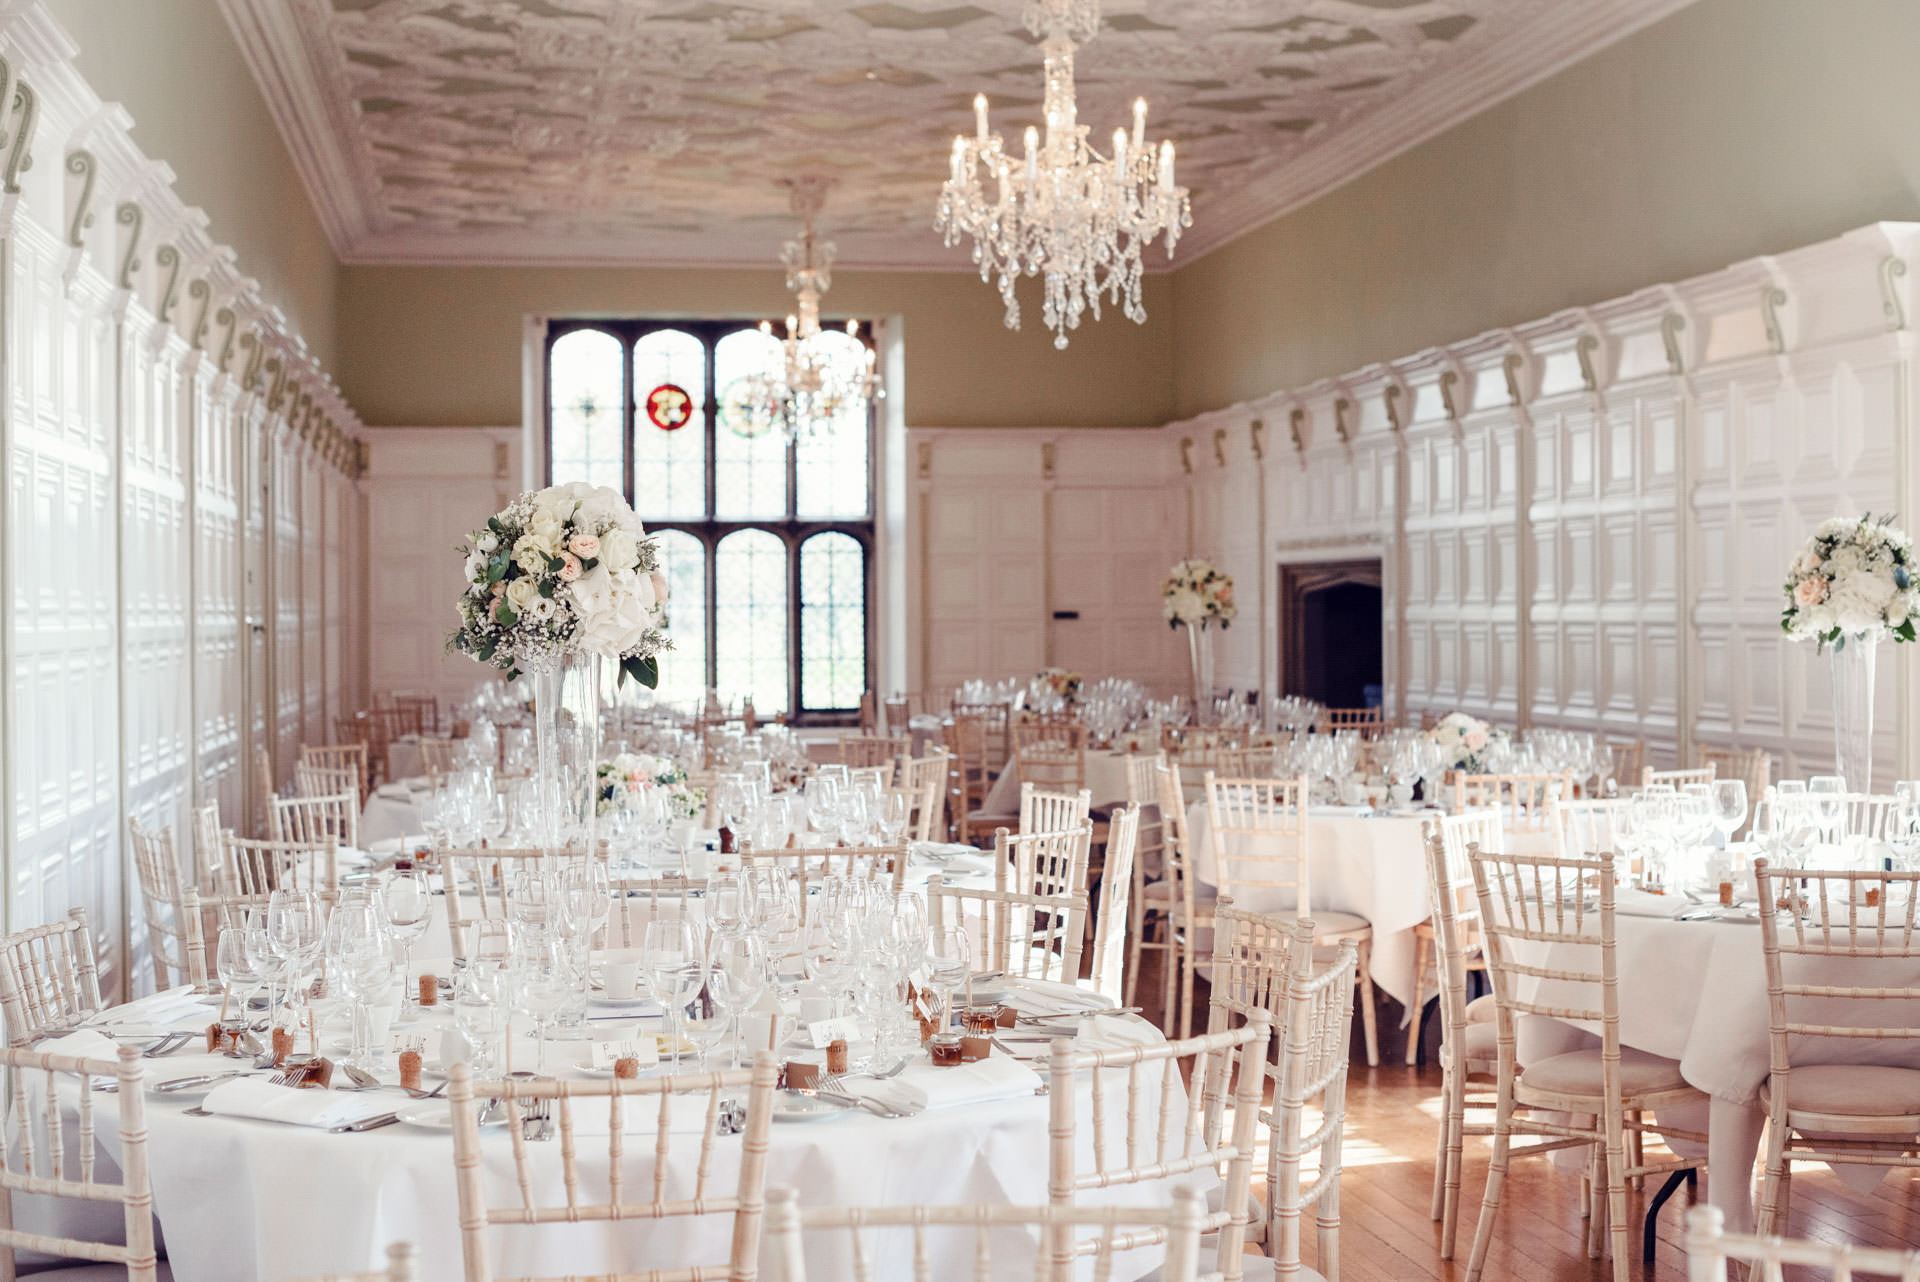 The long gallery at Hengrave Hall.